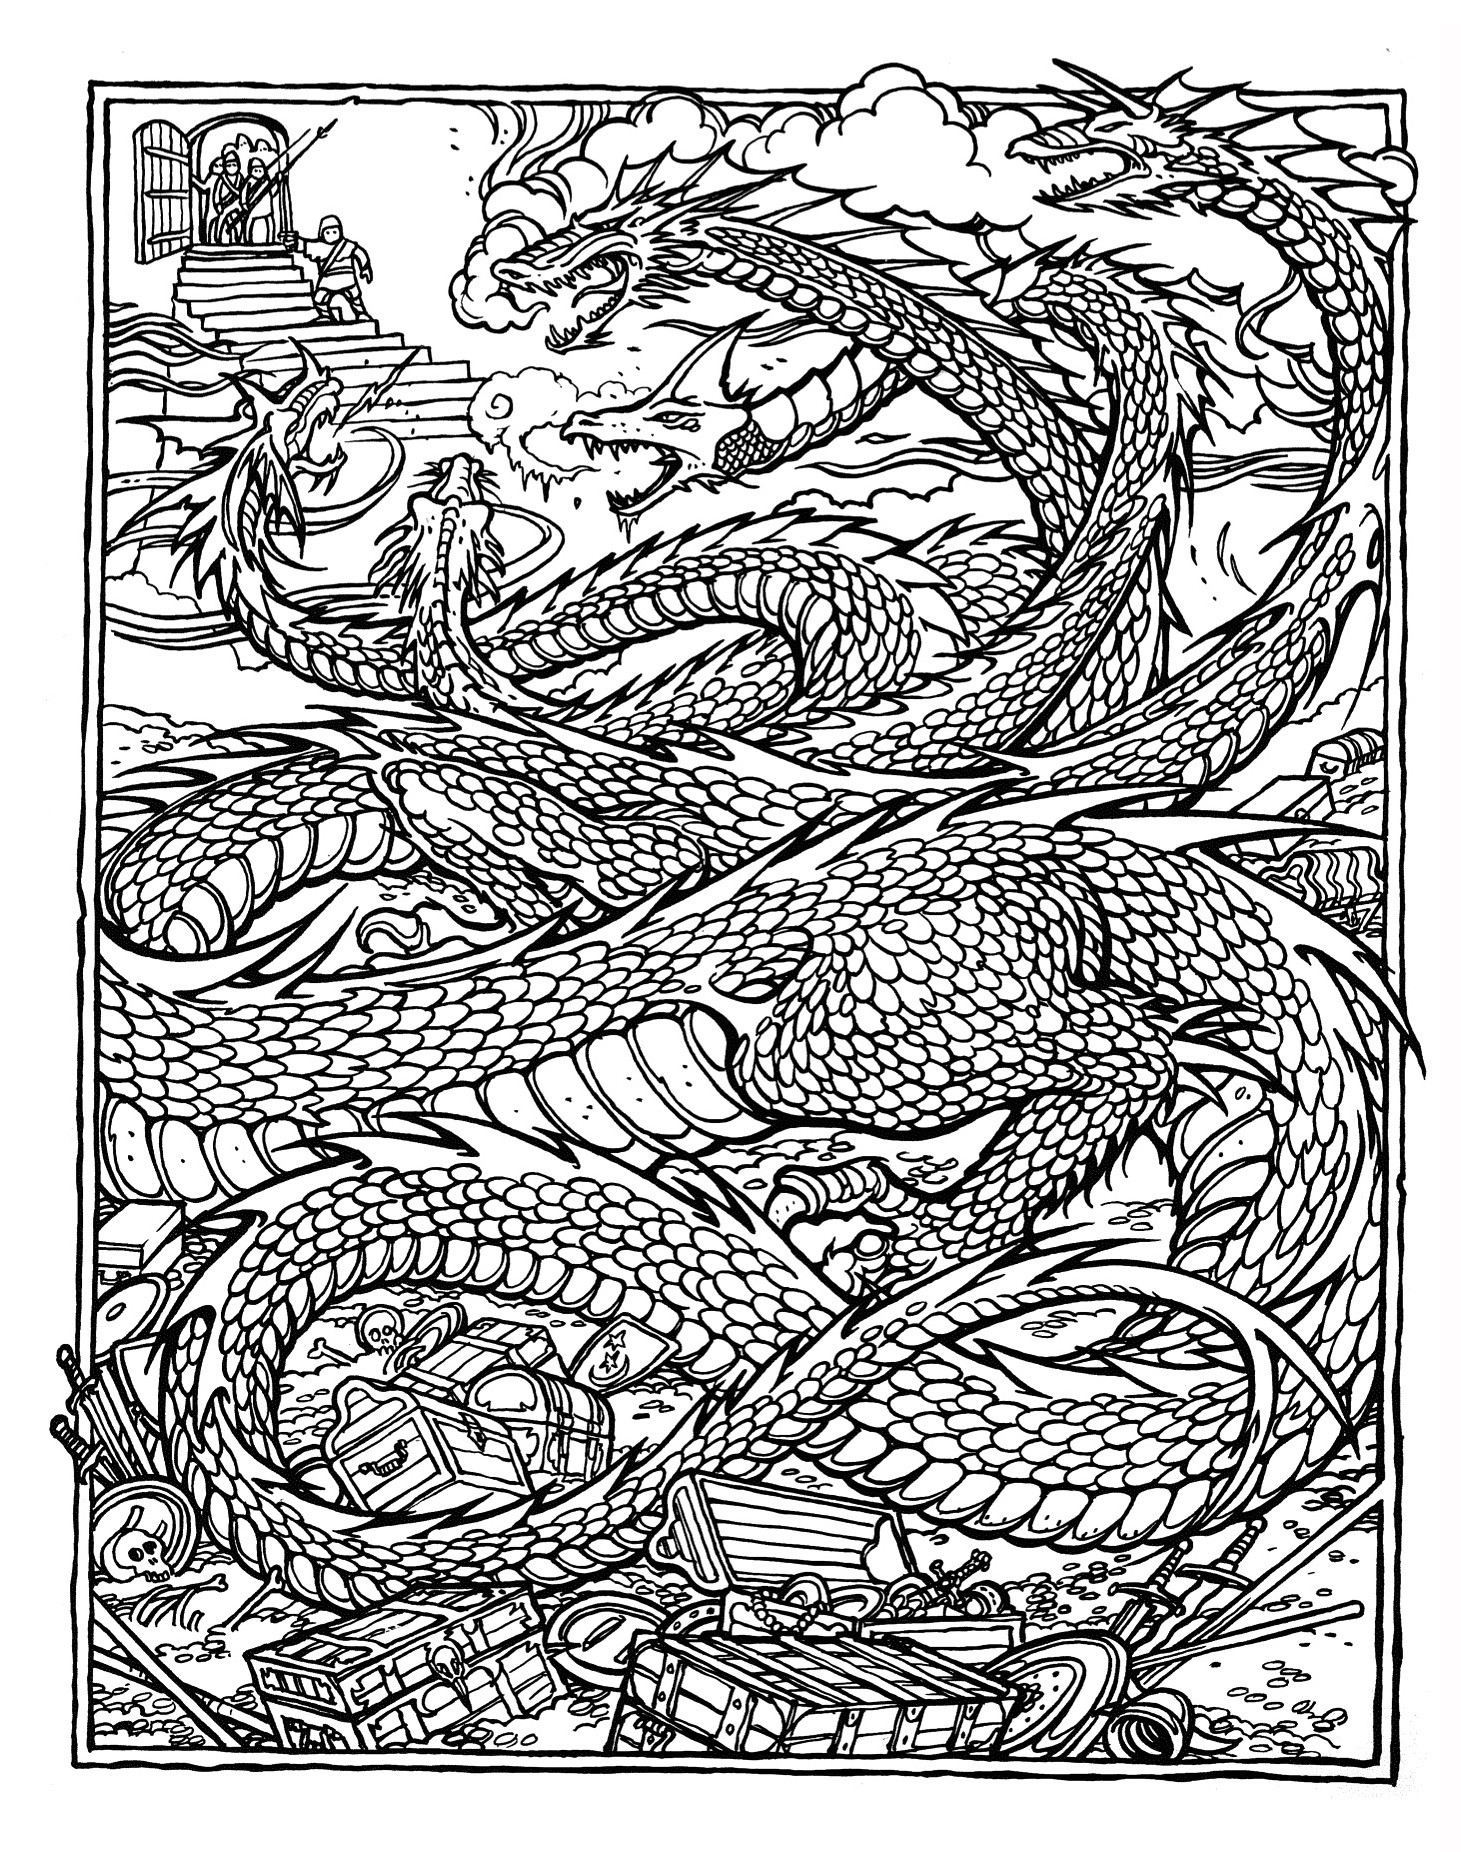 Coloring Pages For Adults Dragon  MONSTER BRAINS The ficial Advanced Dungeons and Dragons